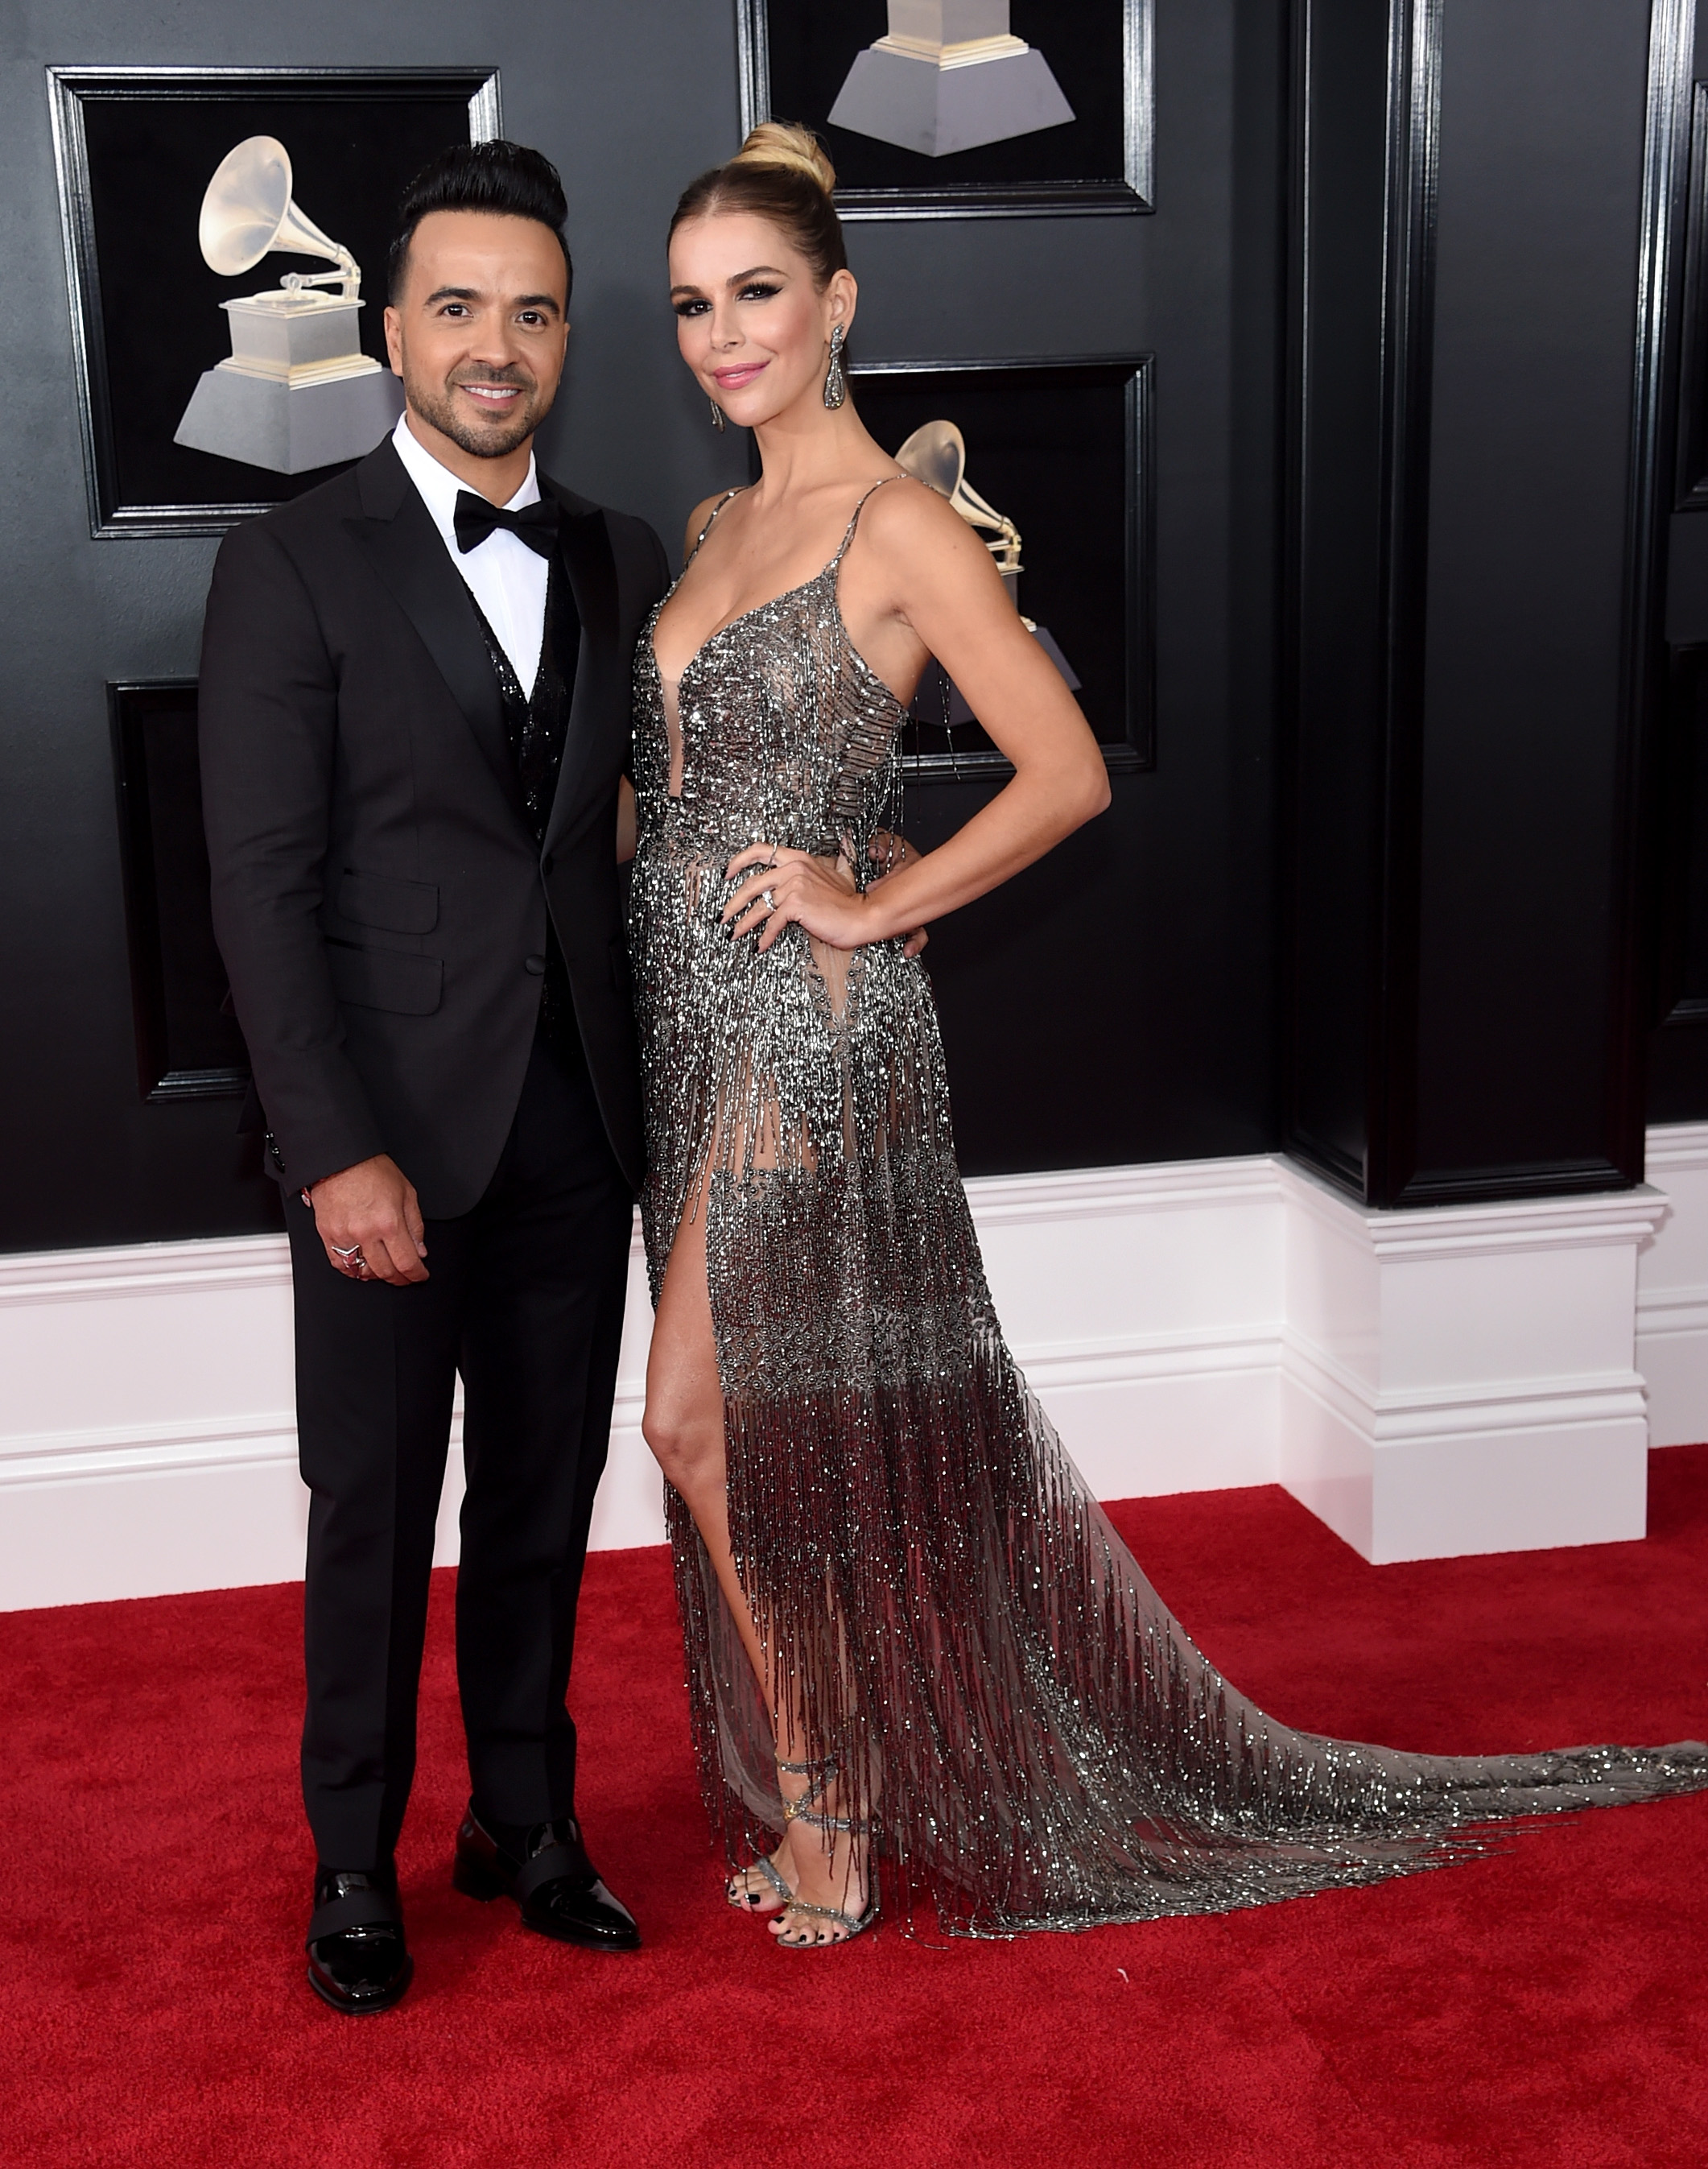 Luis Fonsi and Agueda Lopez